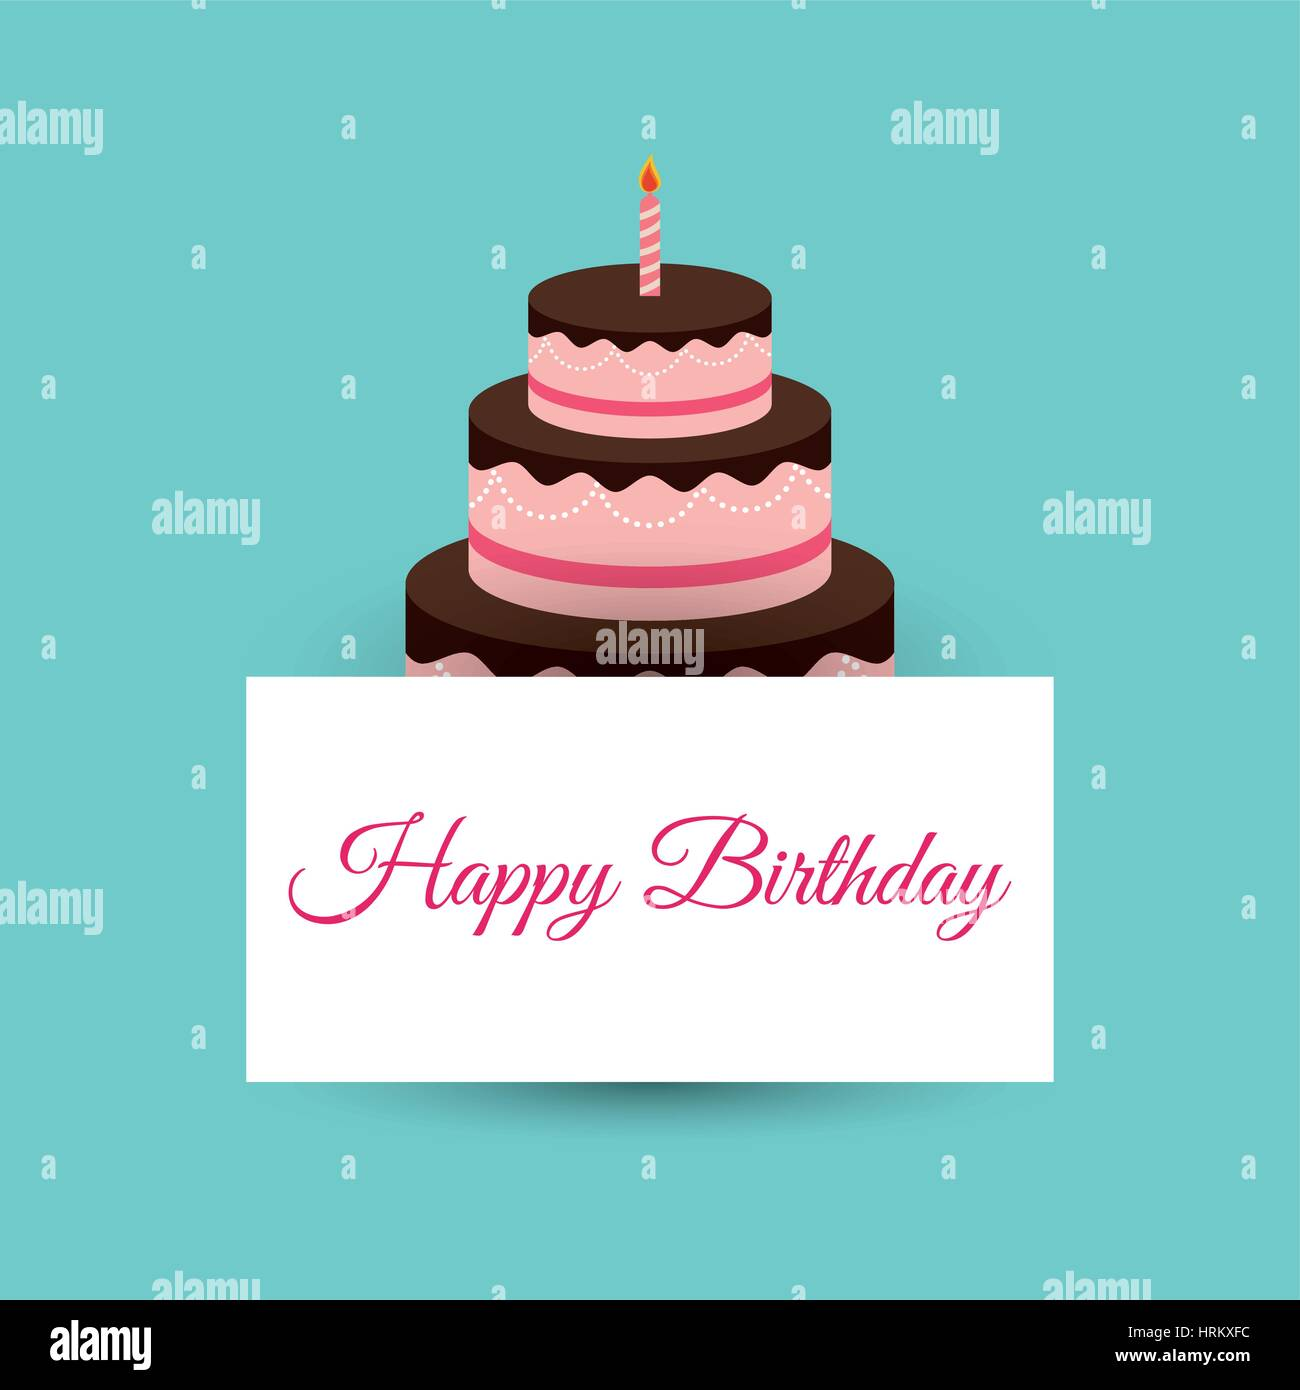 Happy birthday cake card party event stock vector art illustration happy birthday cake card party event bookmarktalkfo Image collections